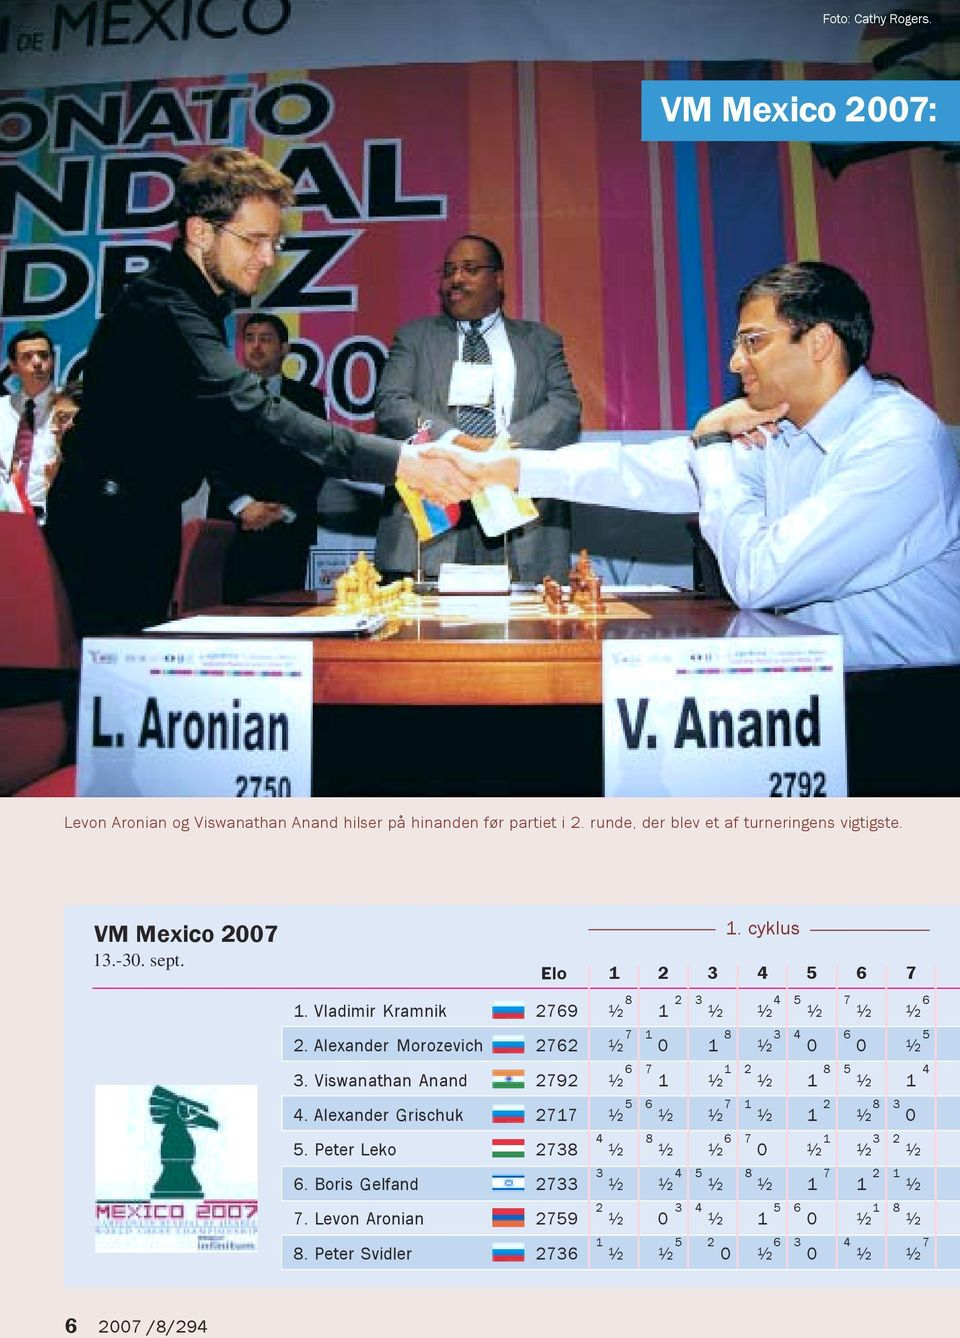 Alexander Morozevich 2762 ½ 7 1 0 1 8 ½ 3 4 0 6 0 5 ½ 3. Viswanathan Anand 2792 ½ 6 7 1 ½ 1 2 ½ 1 8 5 ½ 1 4 4.